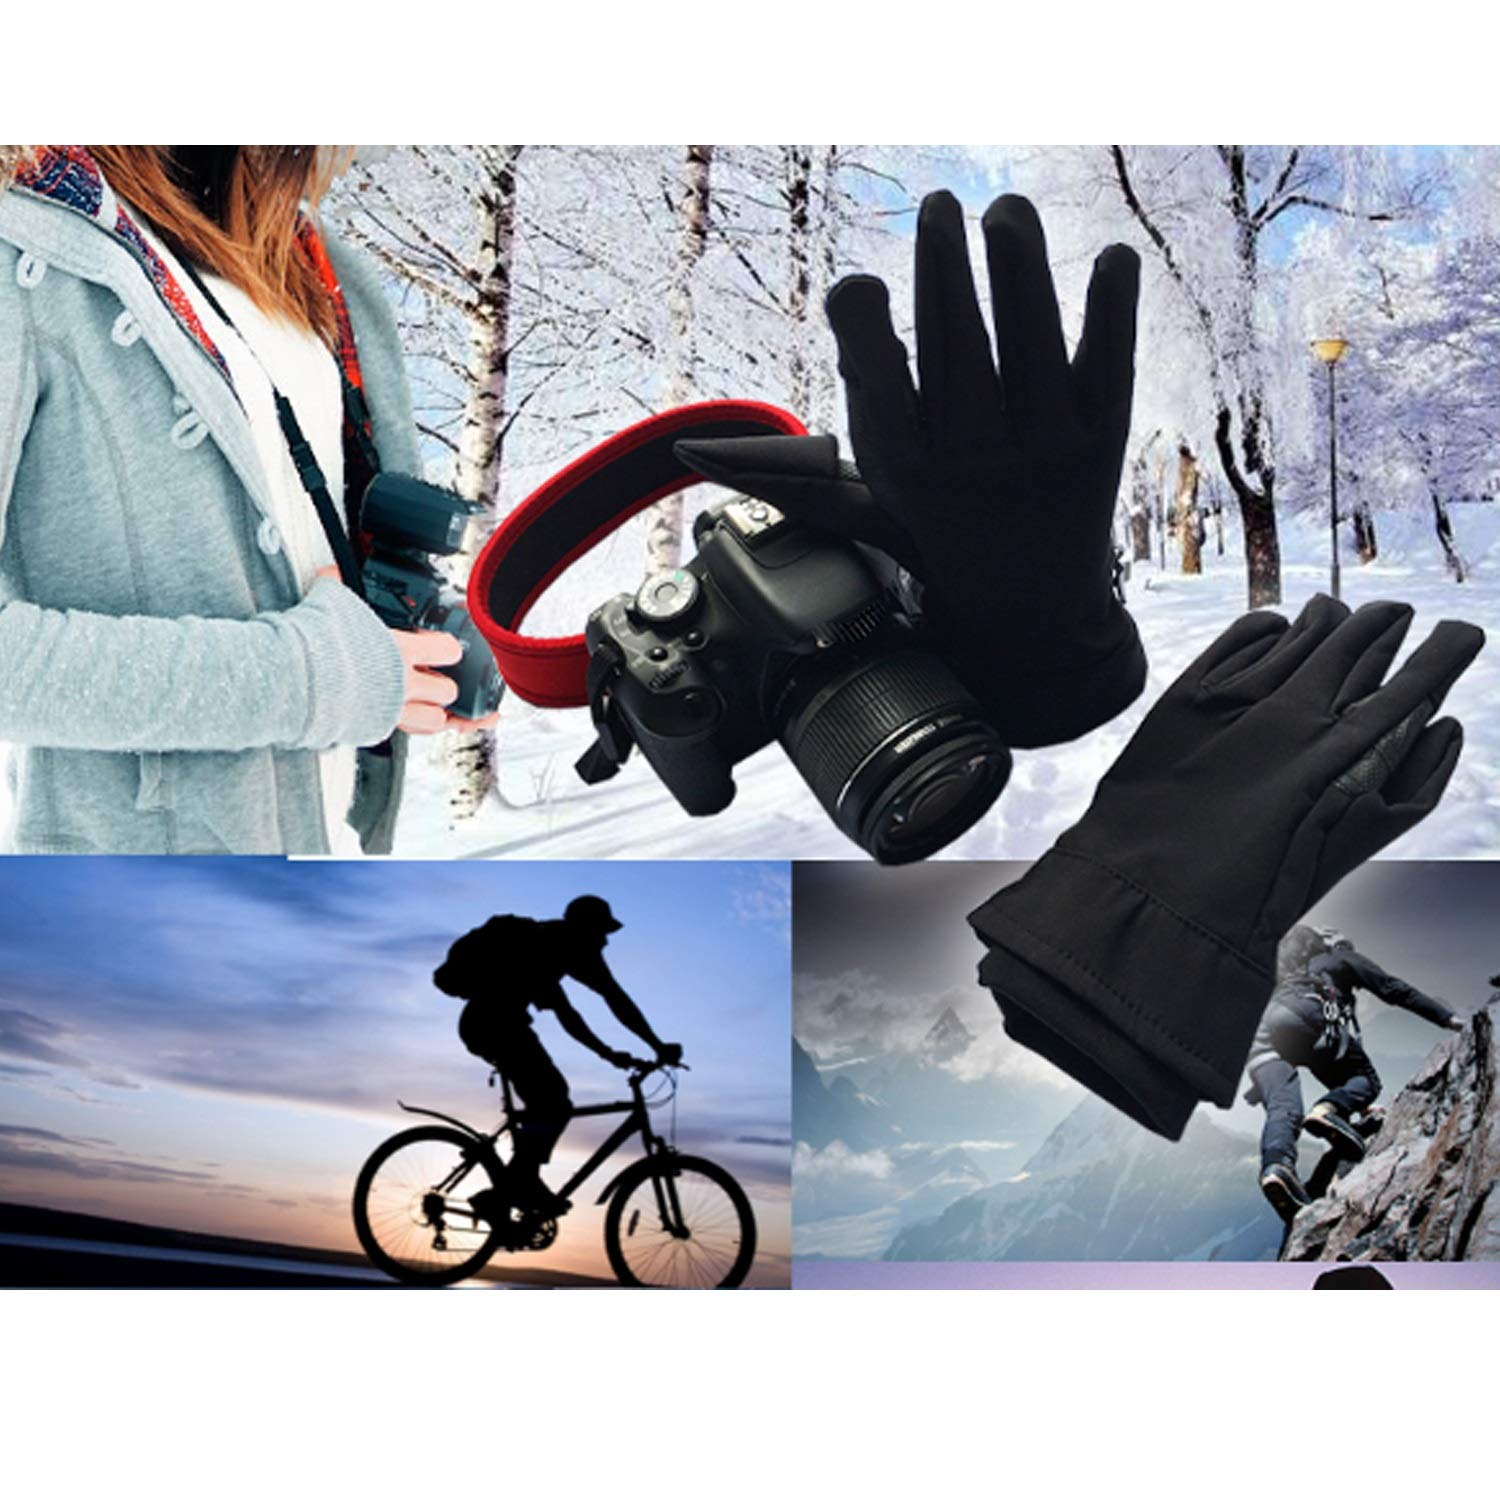 XIAOF-FEN Sensory Gloves for Easy Access to Camera or Phone in Winter Weather, Great for Photography Fly Fishing Ice Fishing Running Touchscreen Work Gloves (Color : Black) by XIAOF-FEN